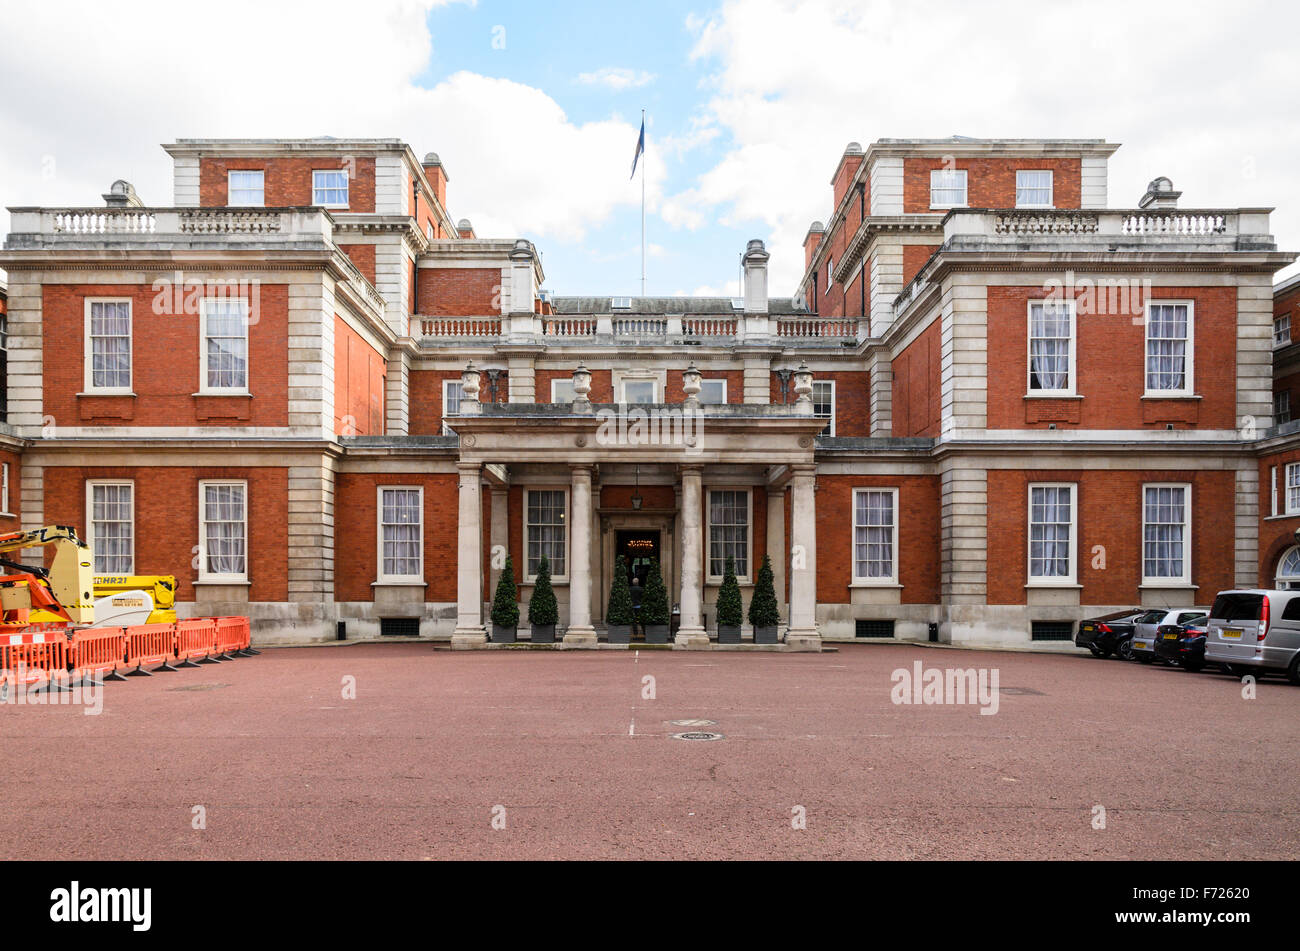 Marlborough House, the home of the Commonwealth Secretariat, Westminster, London, England, UK. Stock Photo